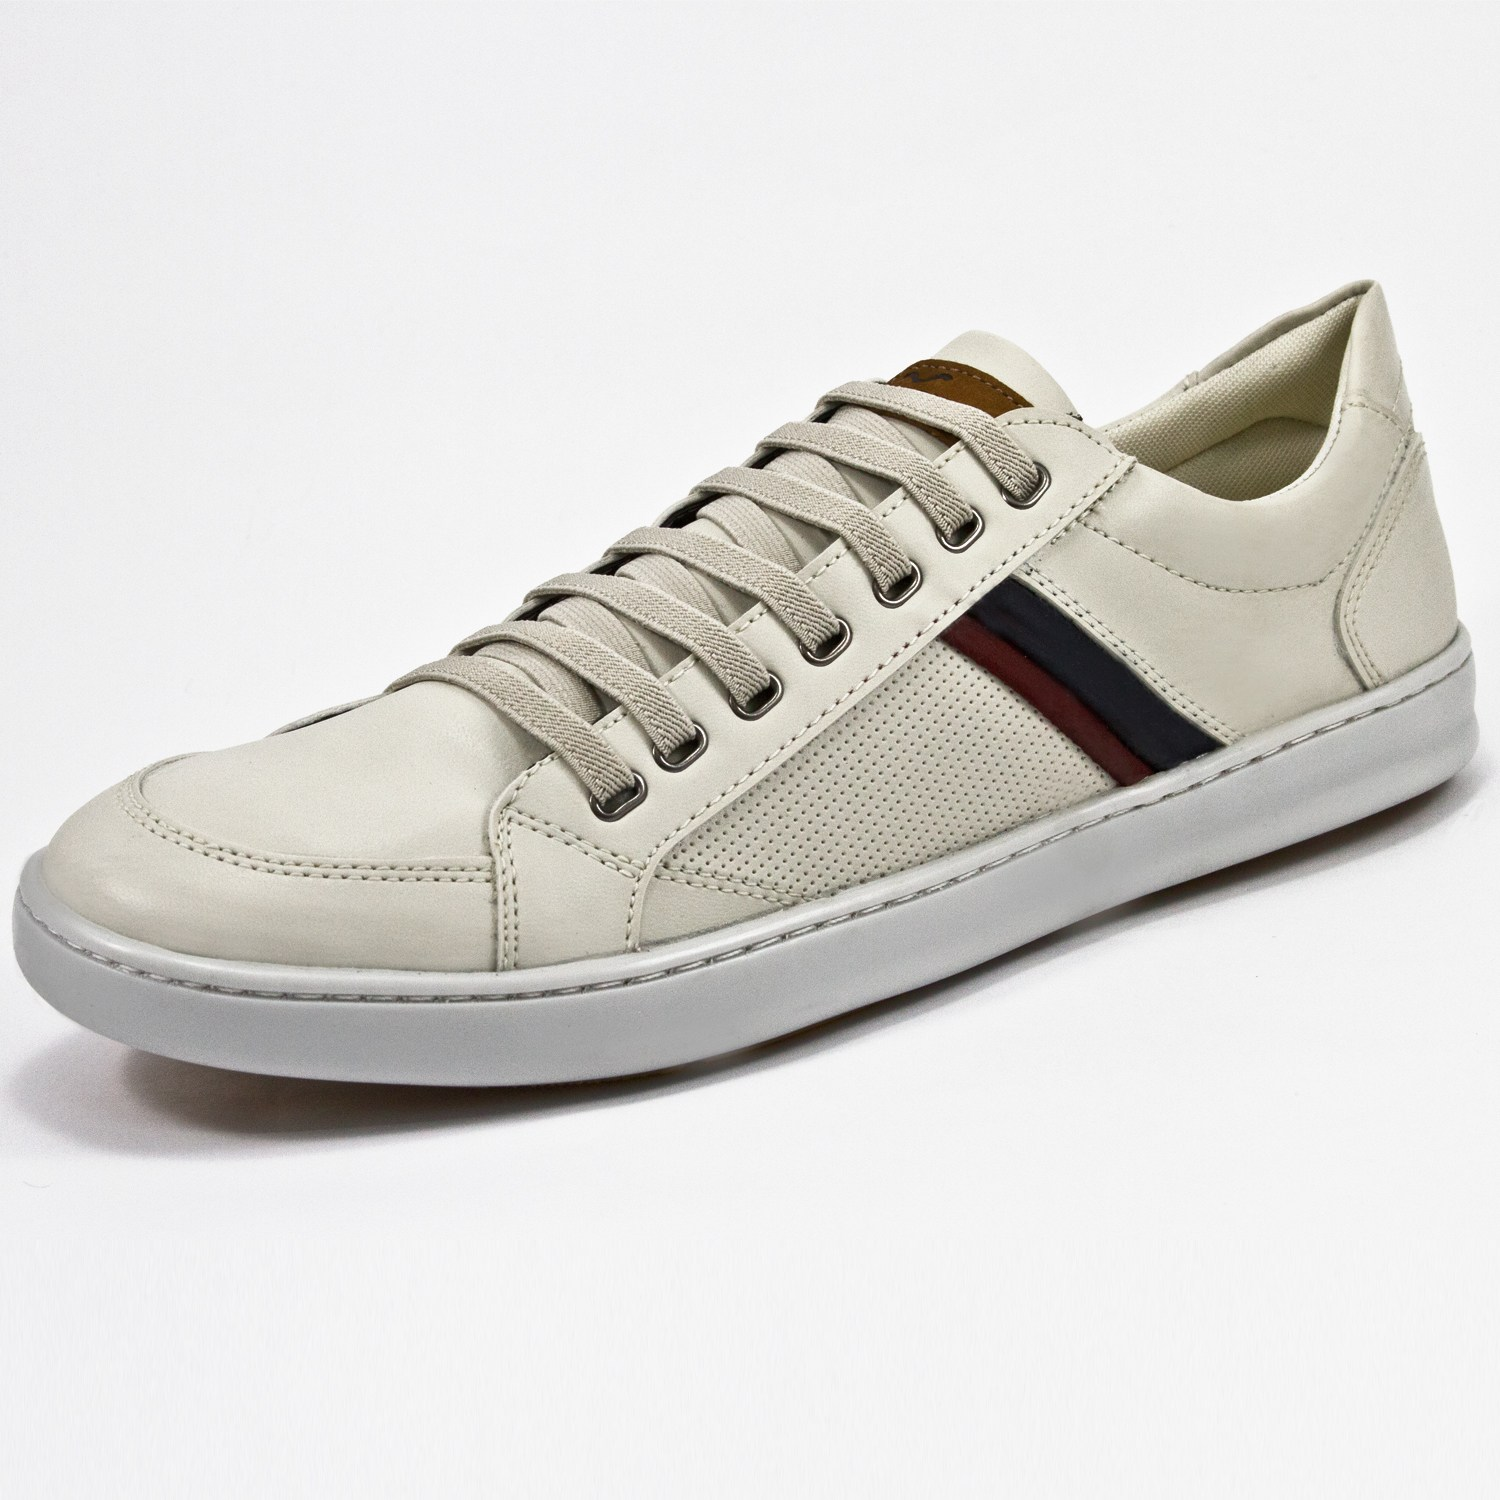 Sapatênis Mariner 26461 Off White